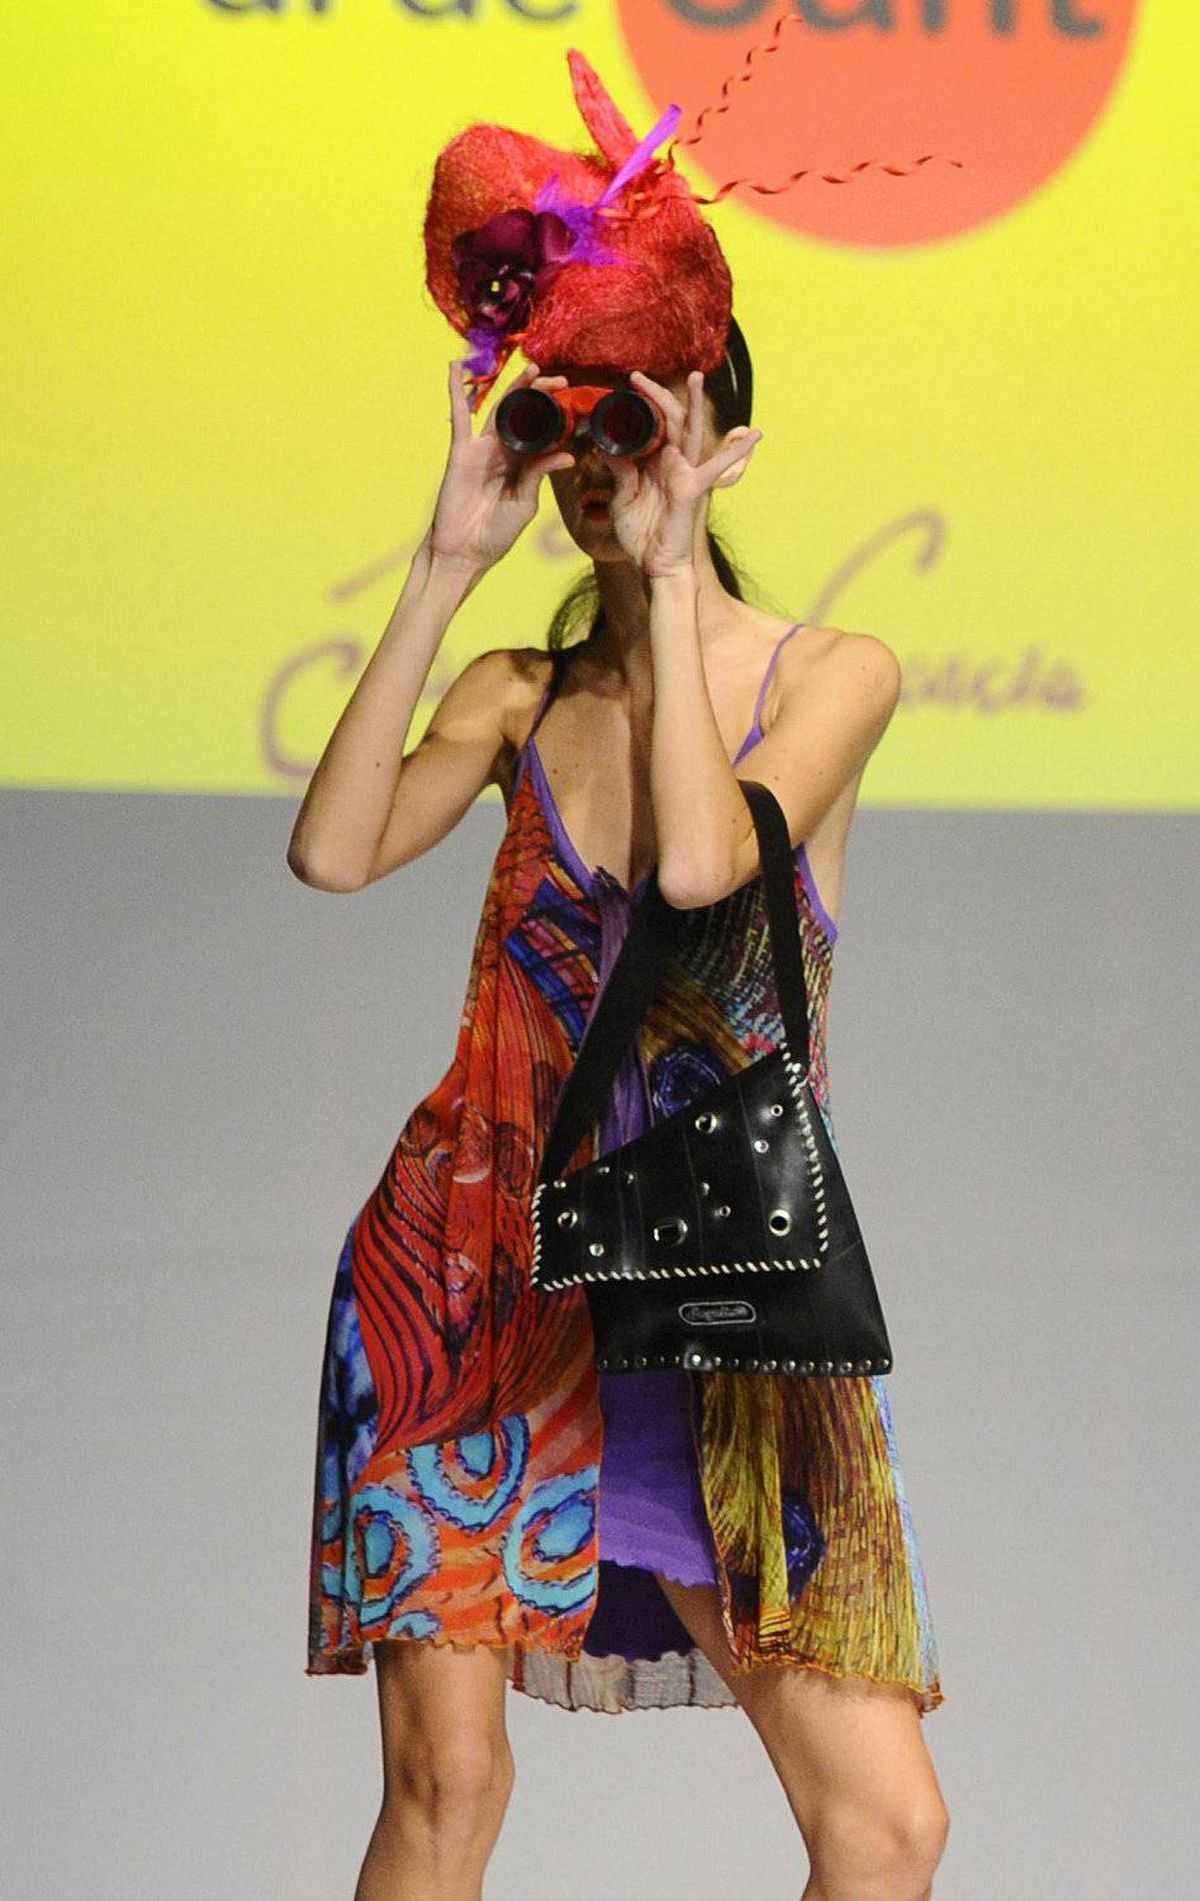 A model presents a creation by Spanish designer Santiago Gonzalez during the Pasarela Castilla y Leon spring/summer 2012 fashion show in Burgos, northern Spain, October 5, 2011.